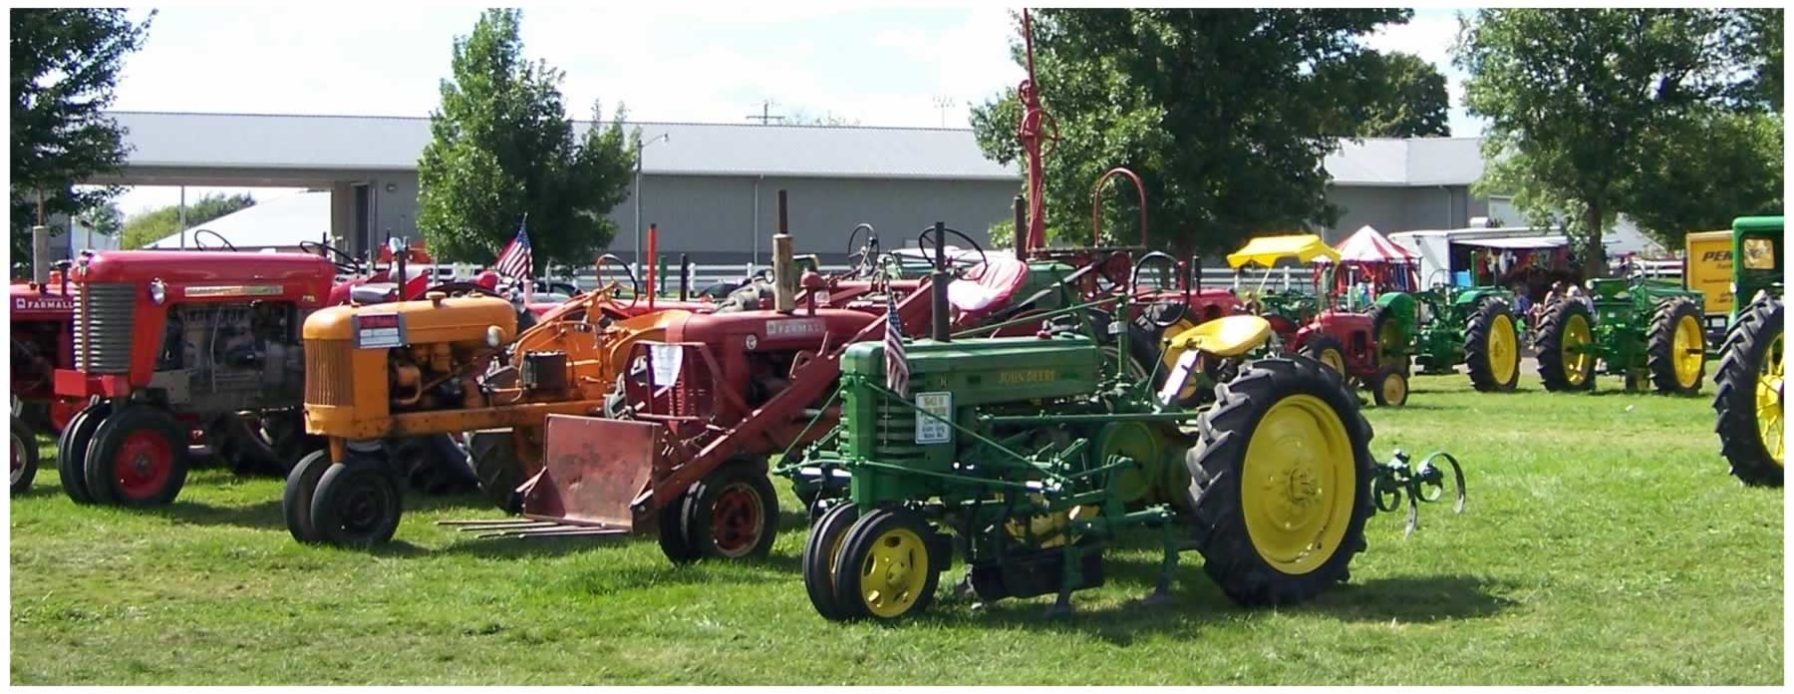 Hesper-Mabel Steam Engine Days 2017 - Mabel, Minnesota - Toot & Whistle Club Drawing to win a Tractor!